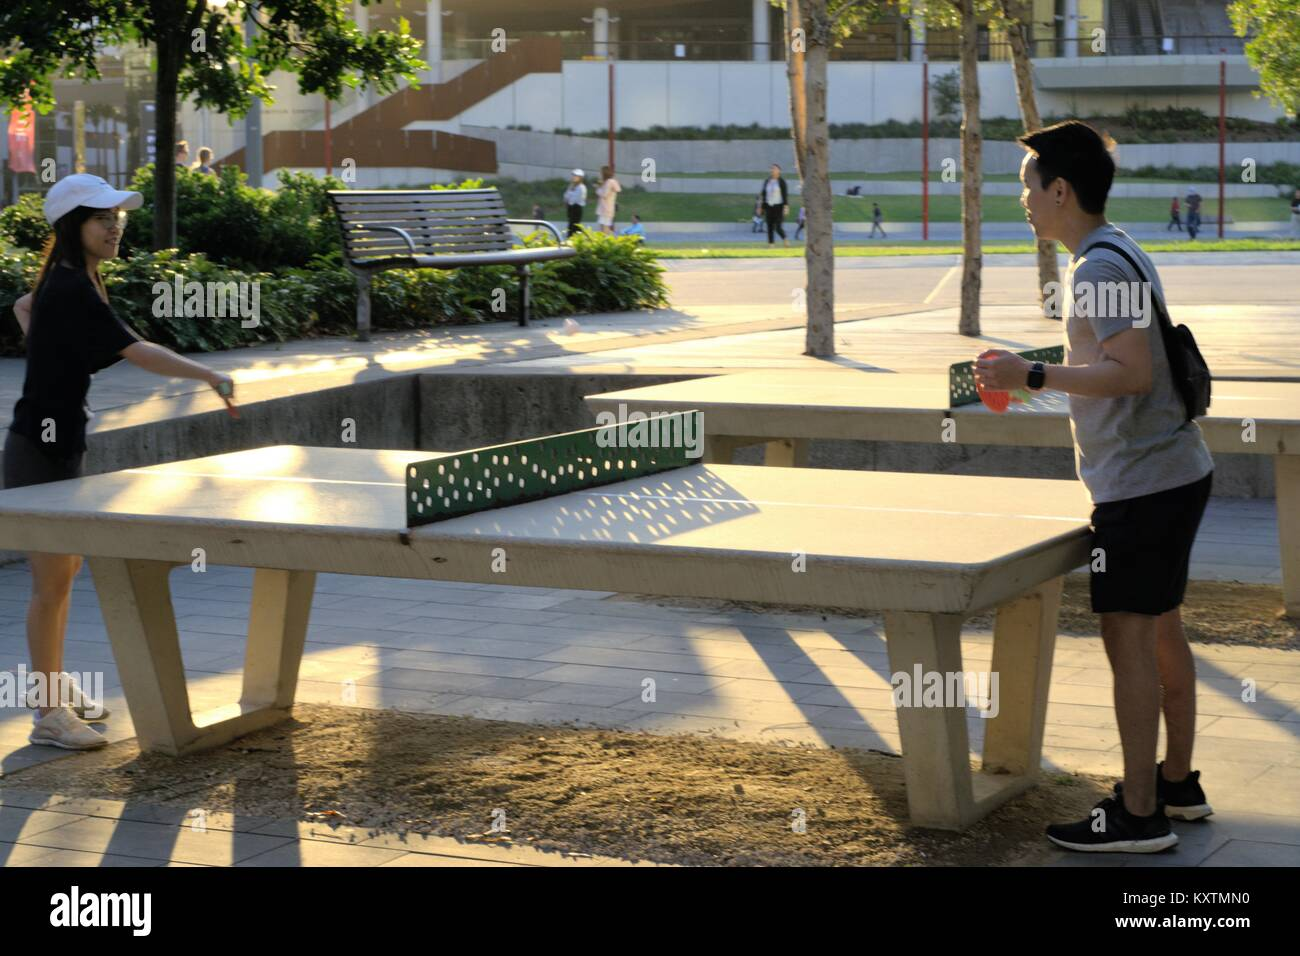 Sydney people playing table tennis at recreational area at Darling Harbour Sydney Australia. People in Sydney enjoying - Stock Image